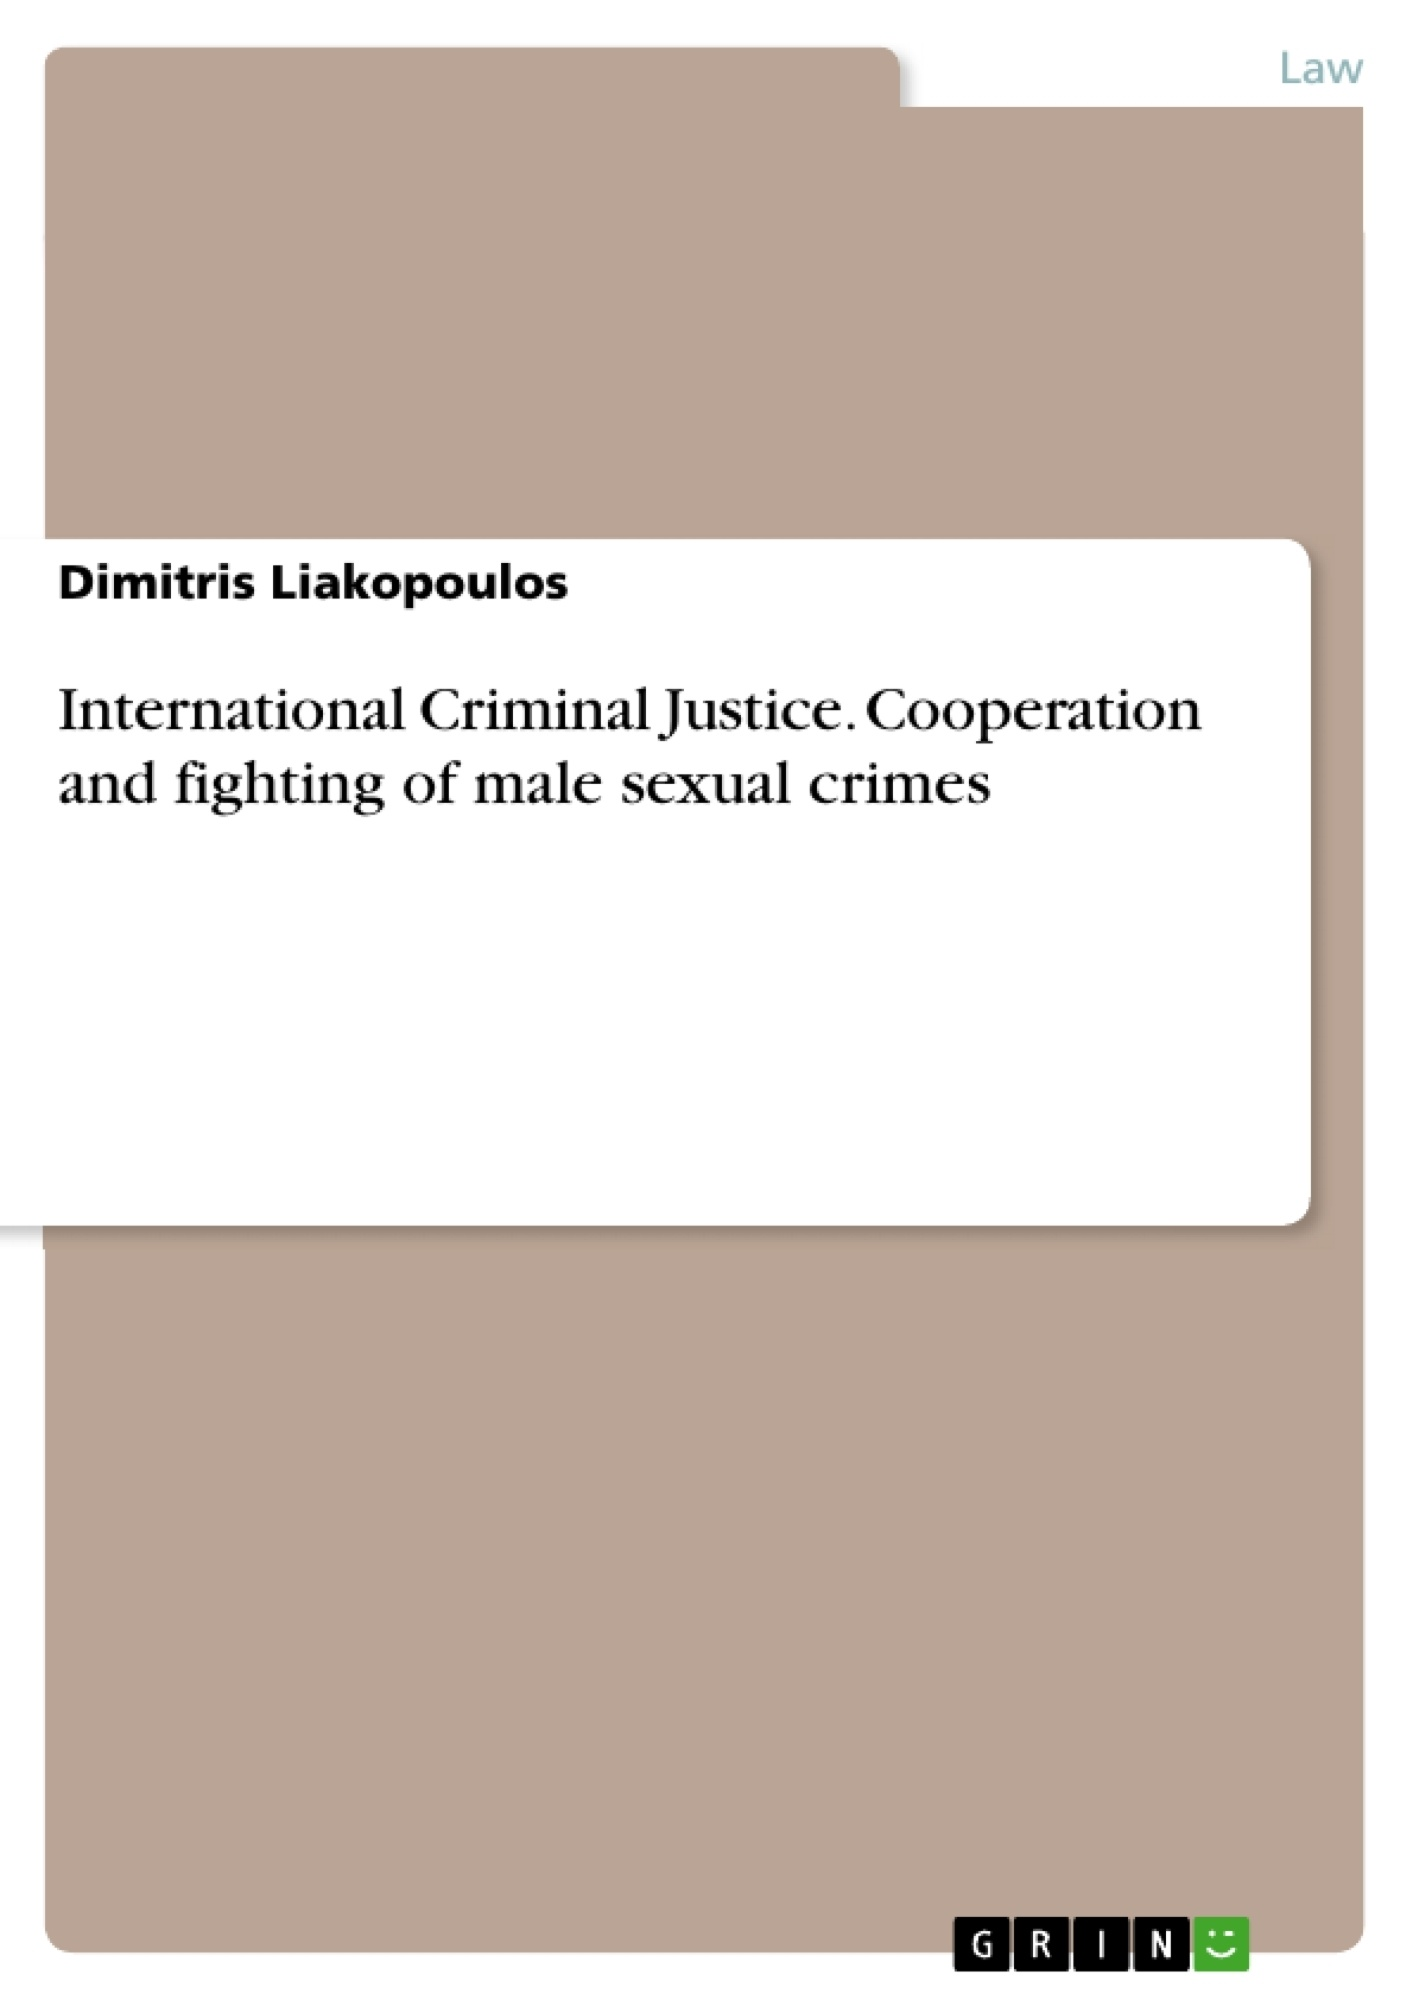 Title: International Criminal Justice. Cooperation and fighting of male sexual crimes